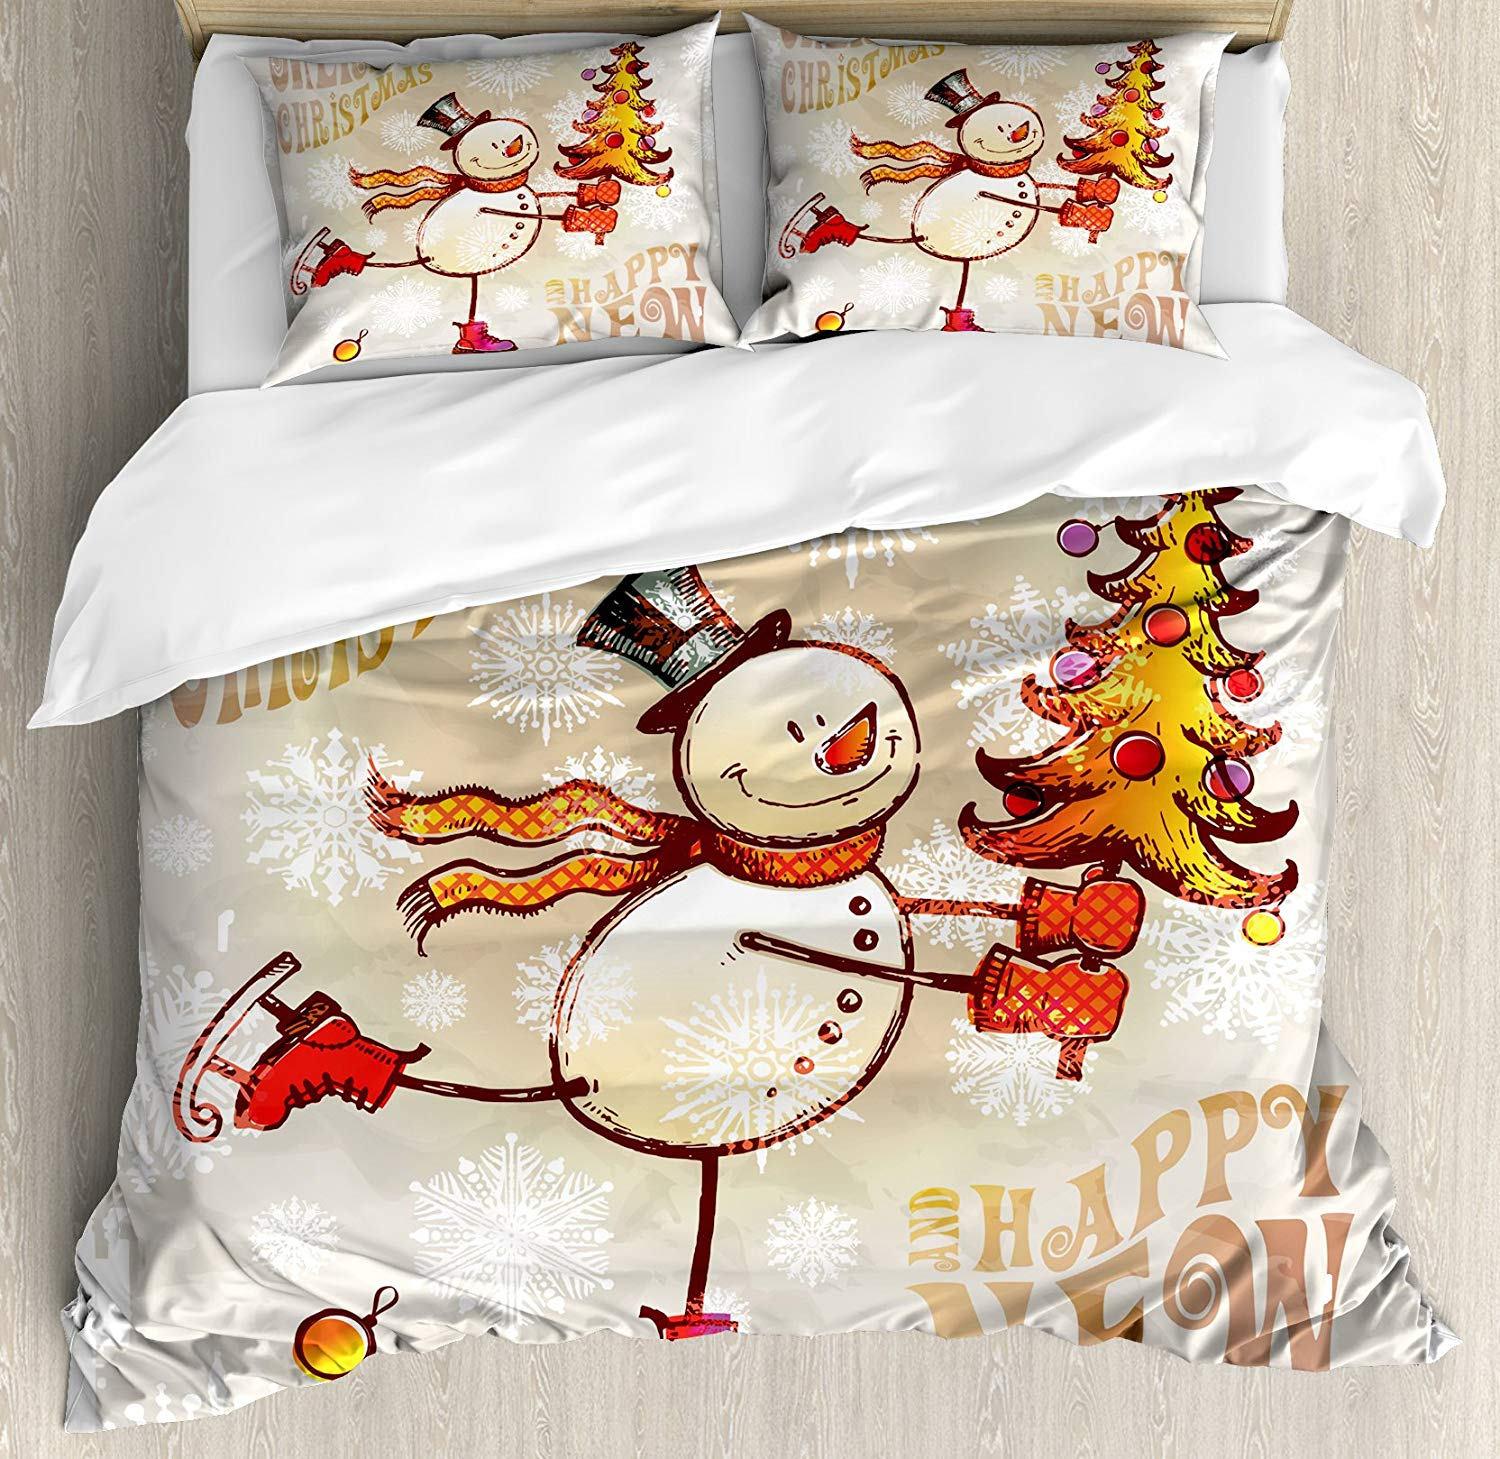 Ambesonne Skating Snowman Christmas Duvet Cover Set - Buy Christmas Duvet Covers